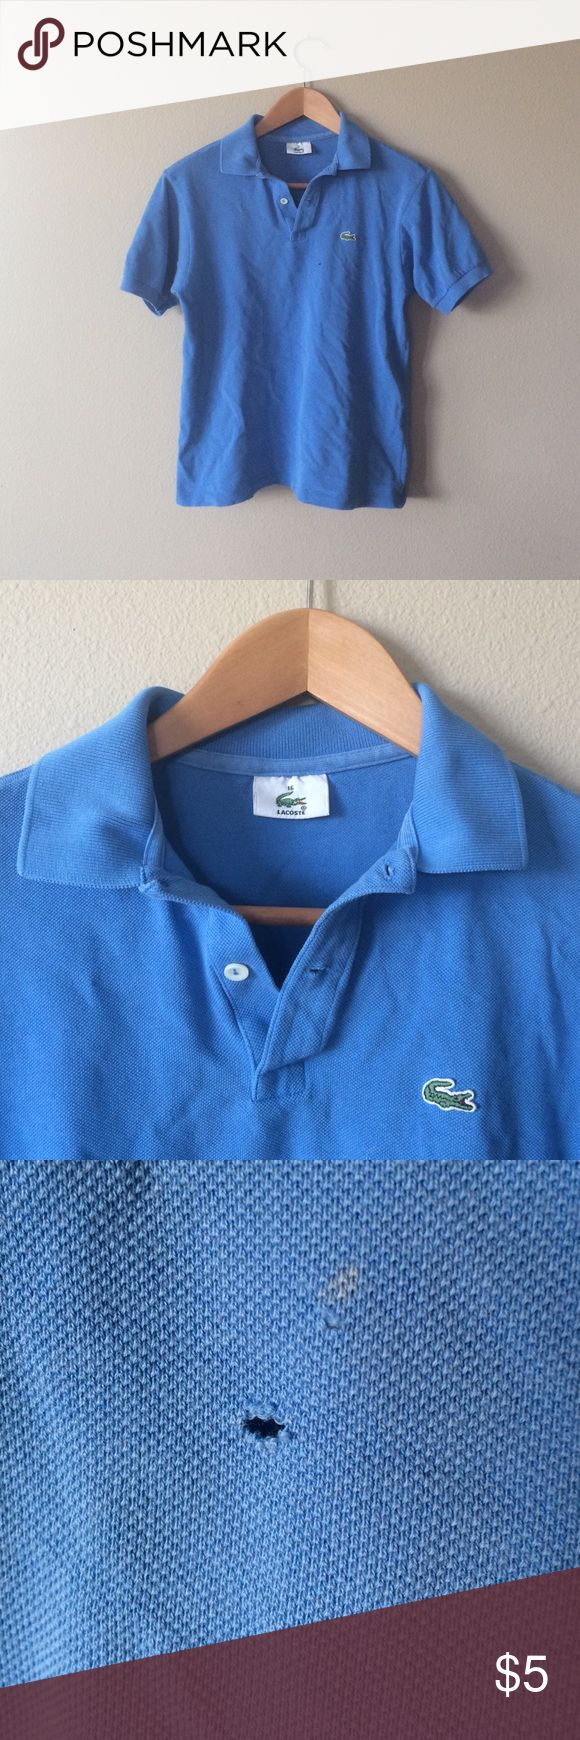 Lacoste Polo Shirt Used condition and it has a small hole at the front (that could be fixed with a needle and thread..) This is Boy size 16, but also goes as a Women's small :) Lacoste Shirts & Tops